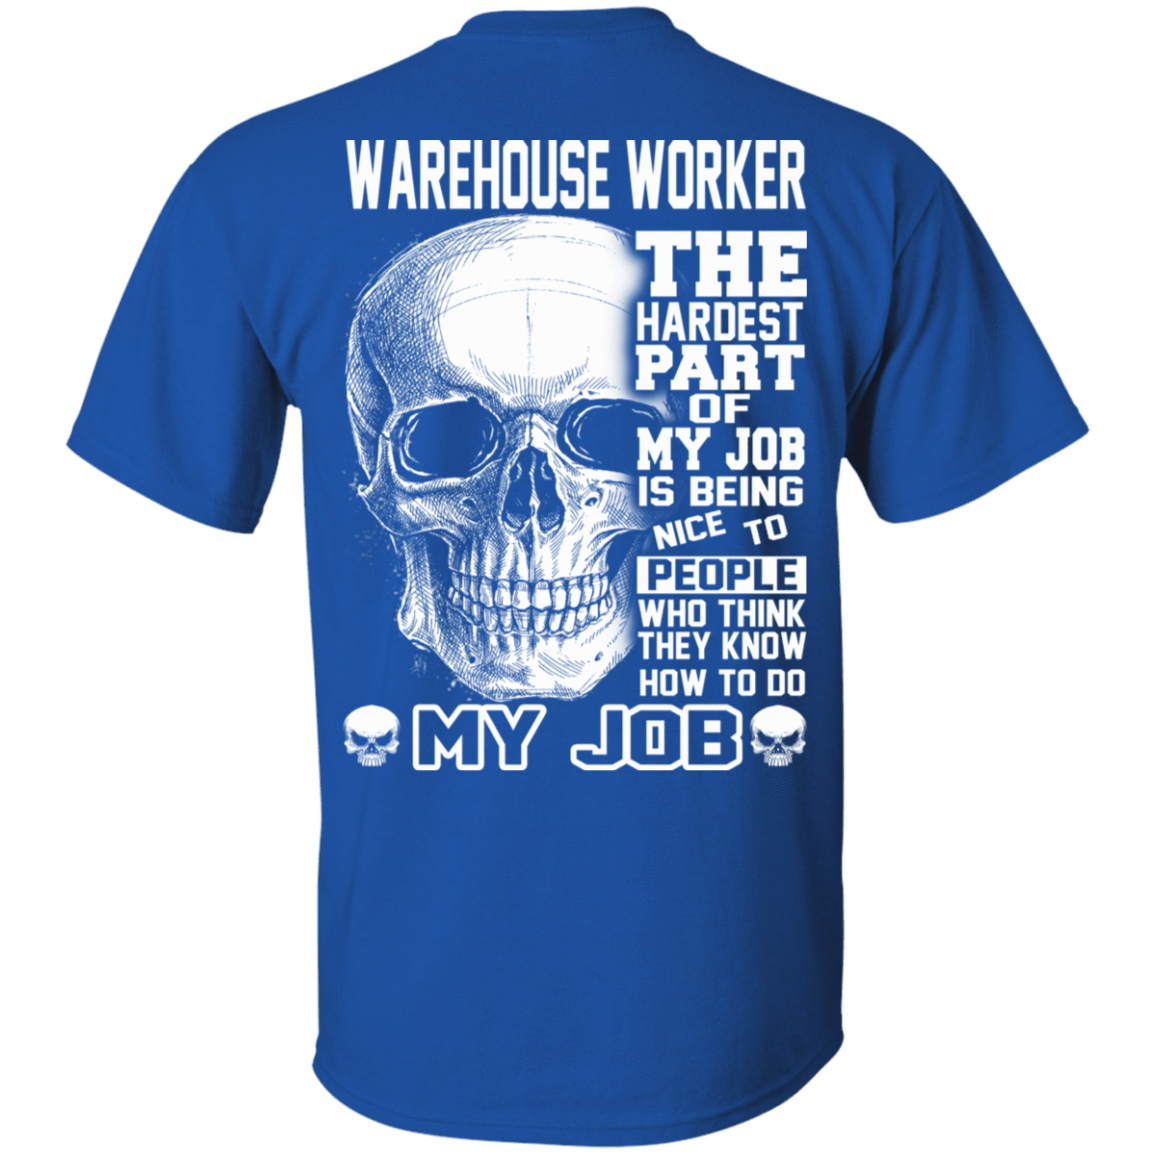 Warehouse Worker The Hardest Part Of My Job 22-110-71609199-249 - Tee Ript